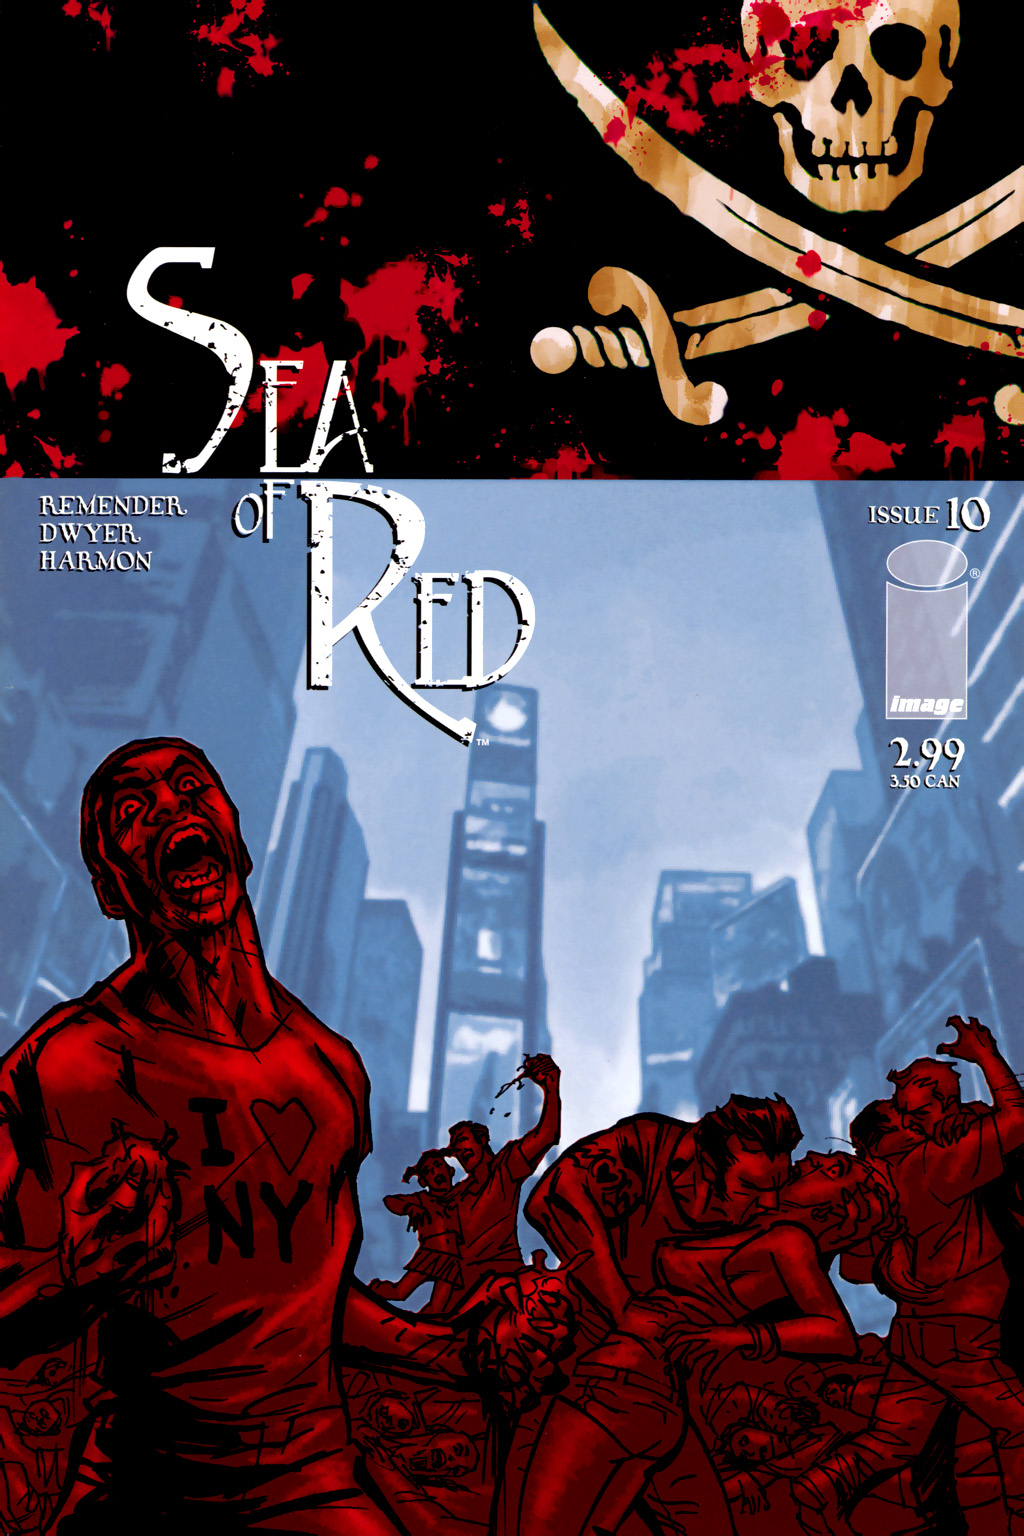 Read online Sea of Red comic -  Issue #10 - 1